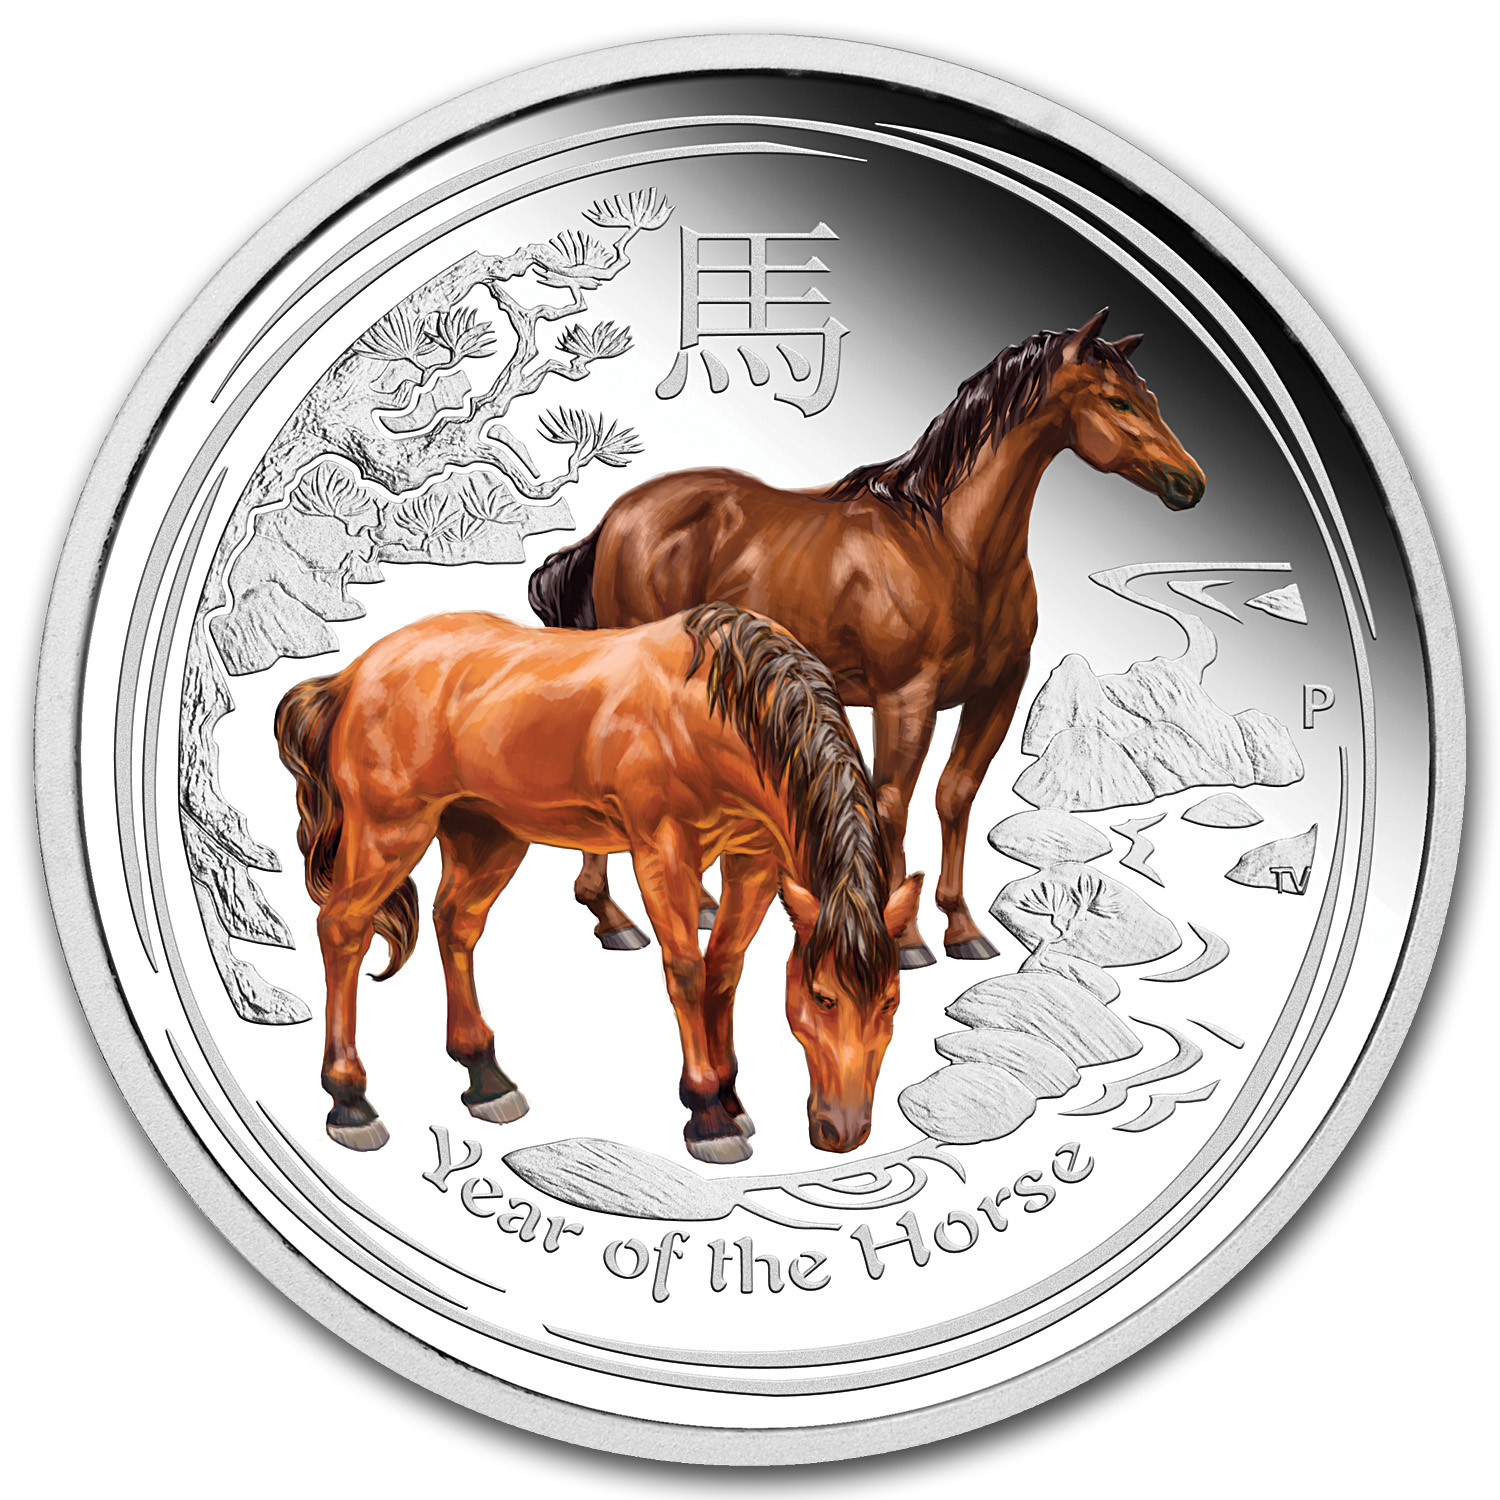 2014 Australia 1 oz Silver Lunar Horse Proof (Colorized)